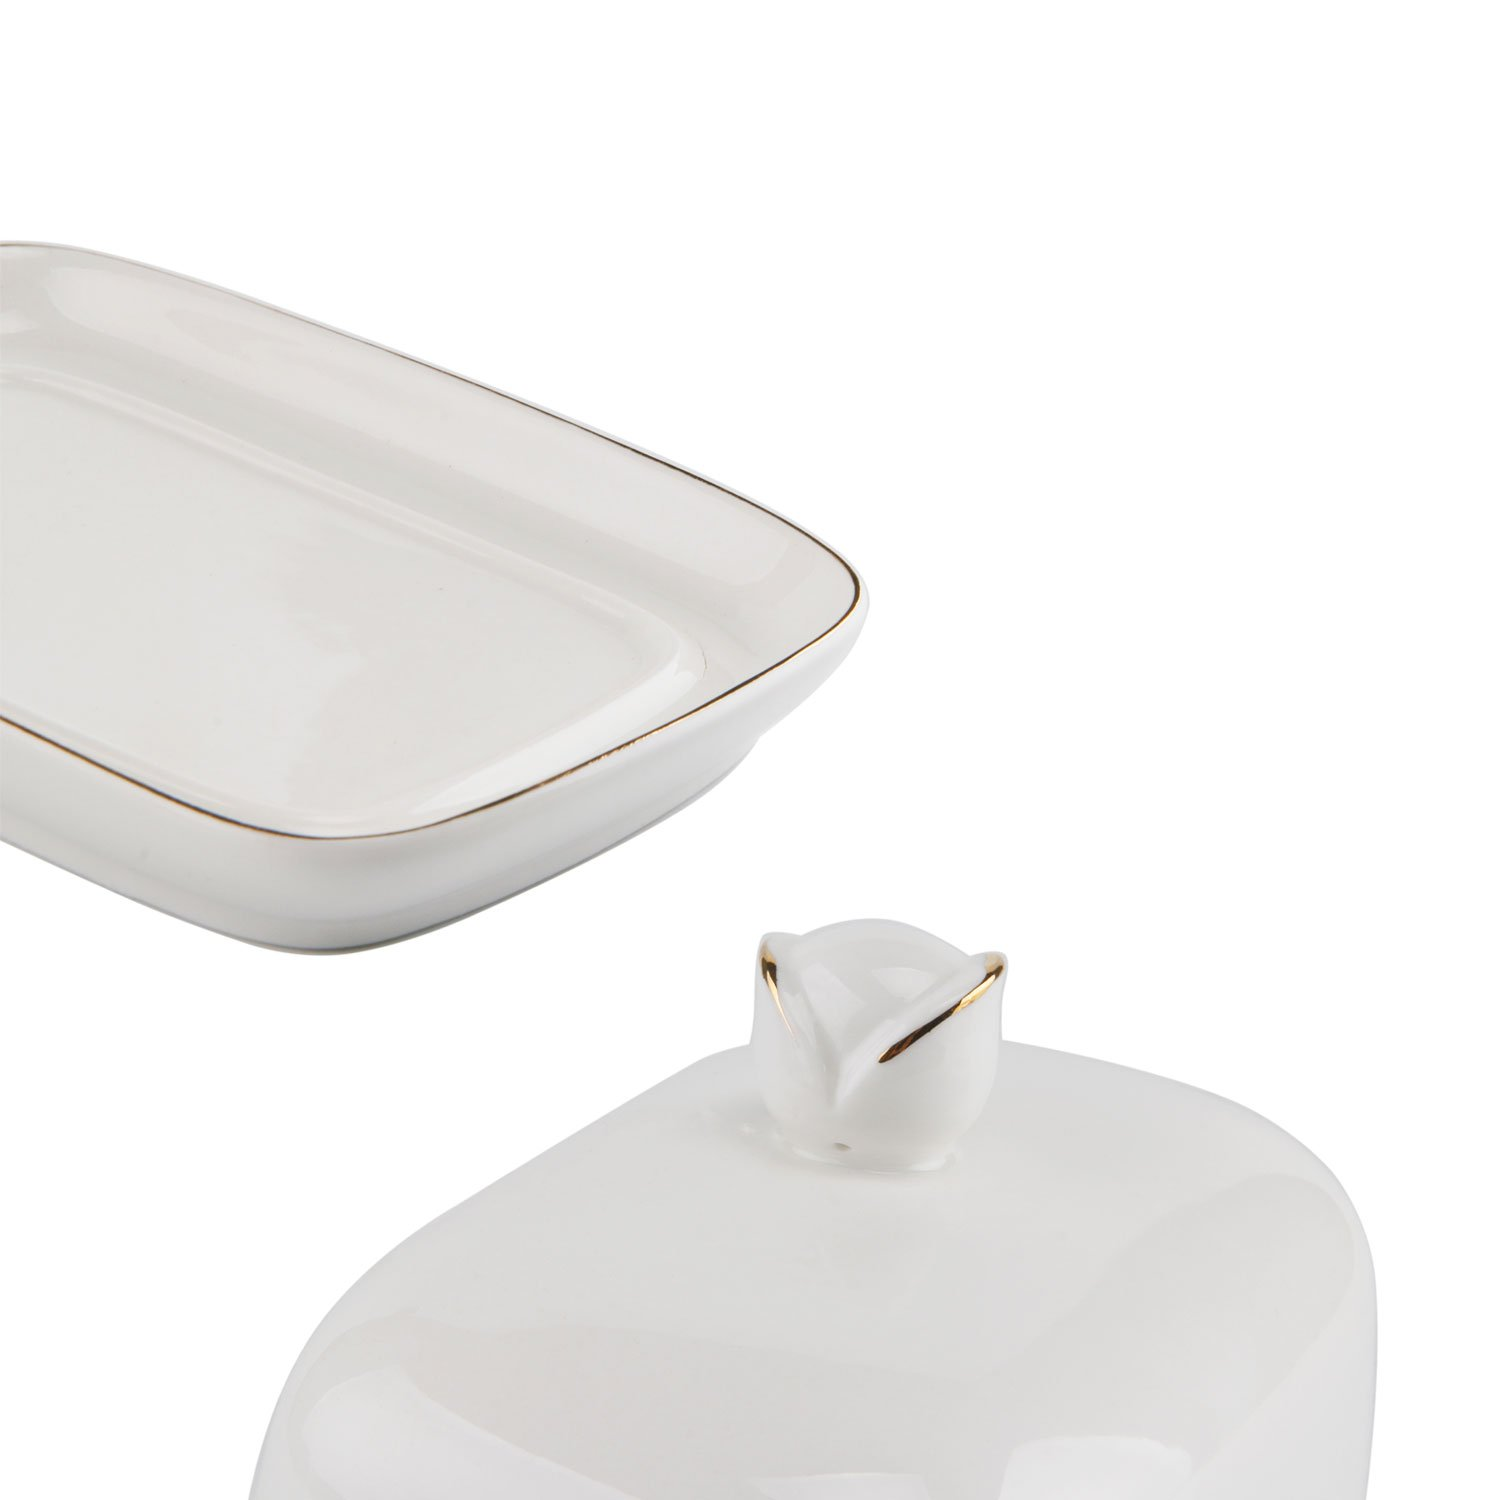 Porcelain Butter Dish with Lid Cover Set of 2 White Ceramic Butter Dish Keeper with Bud Handle Rectangle Golden Edge